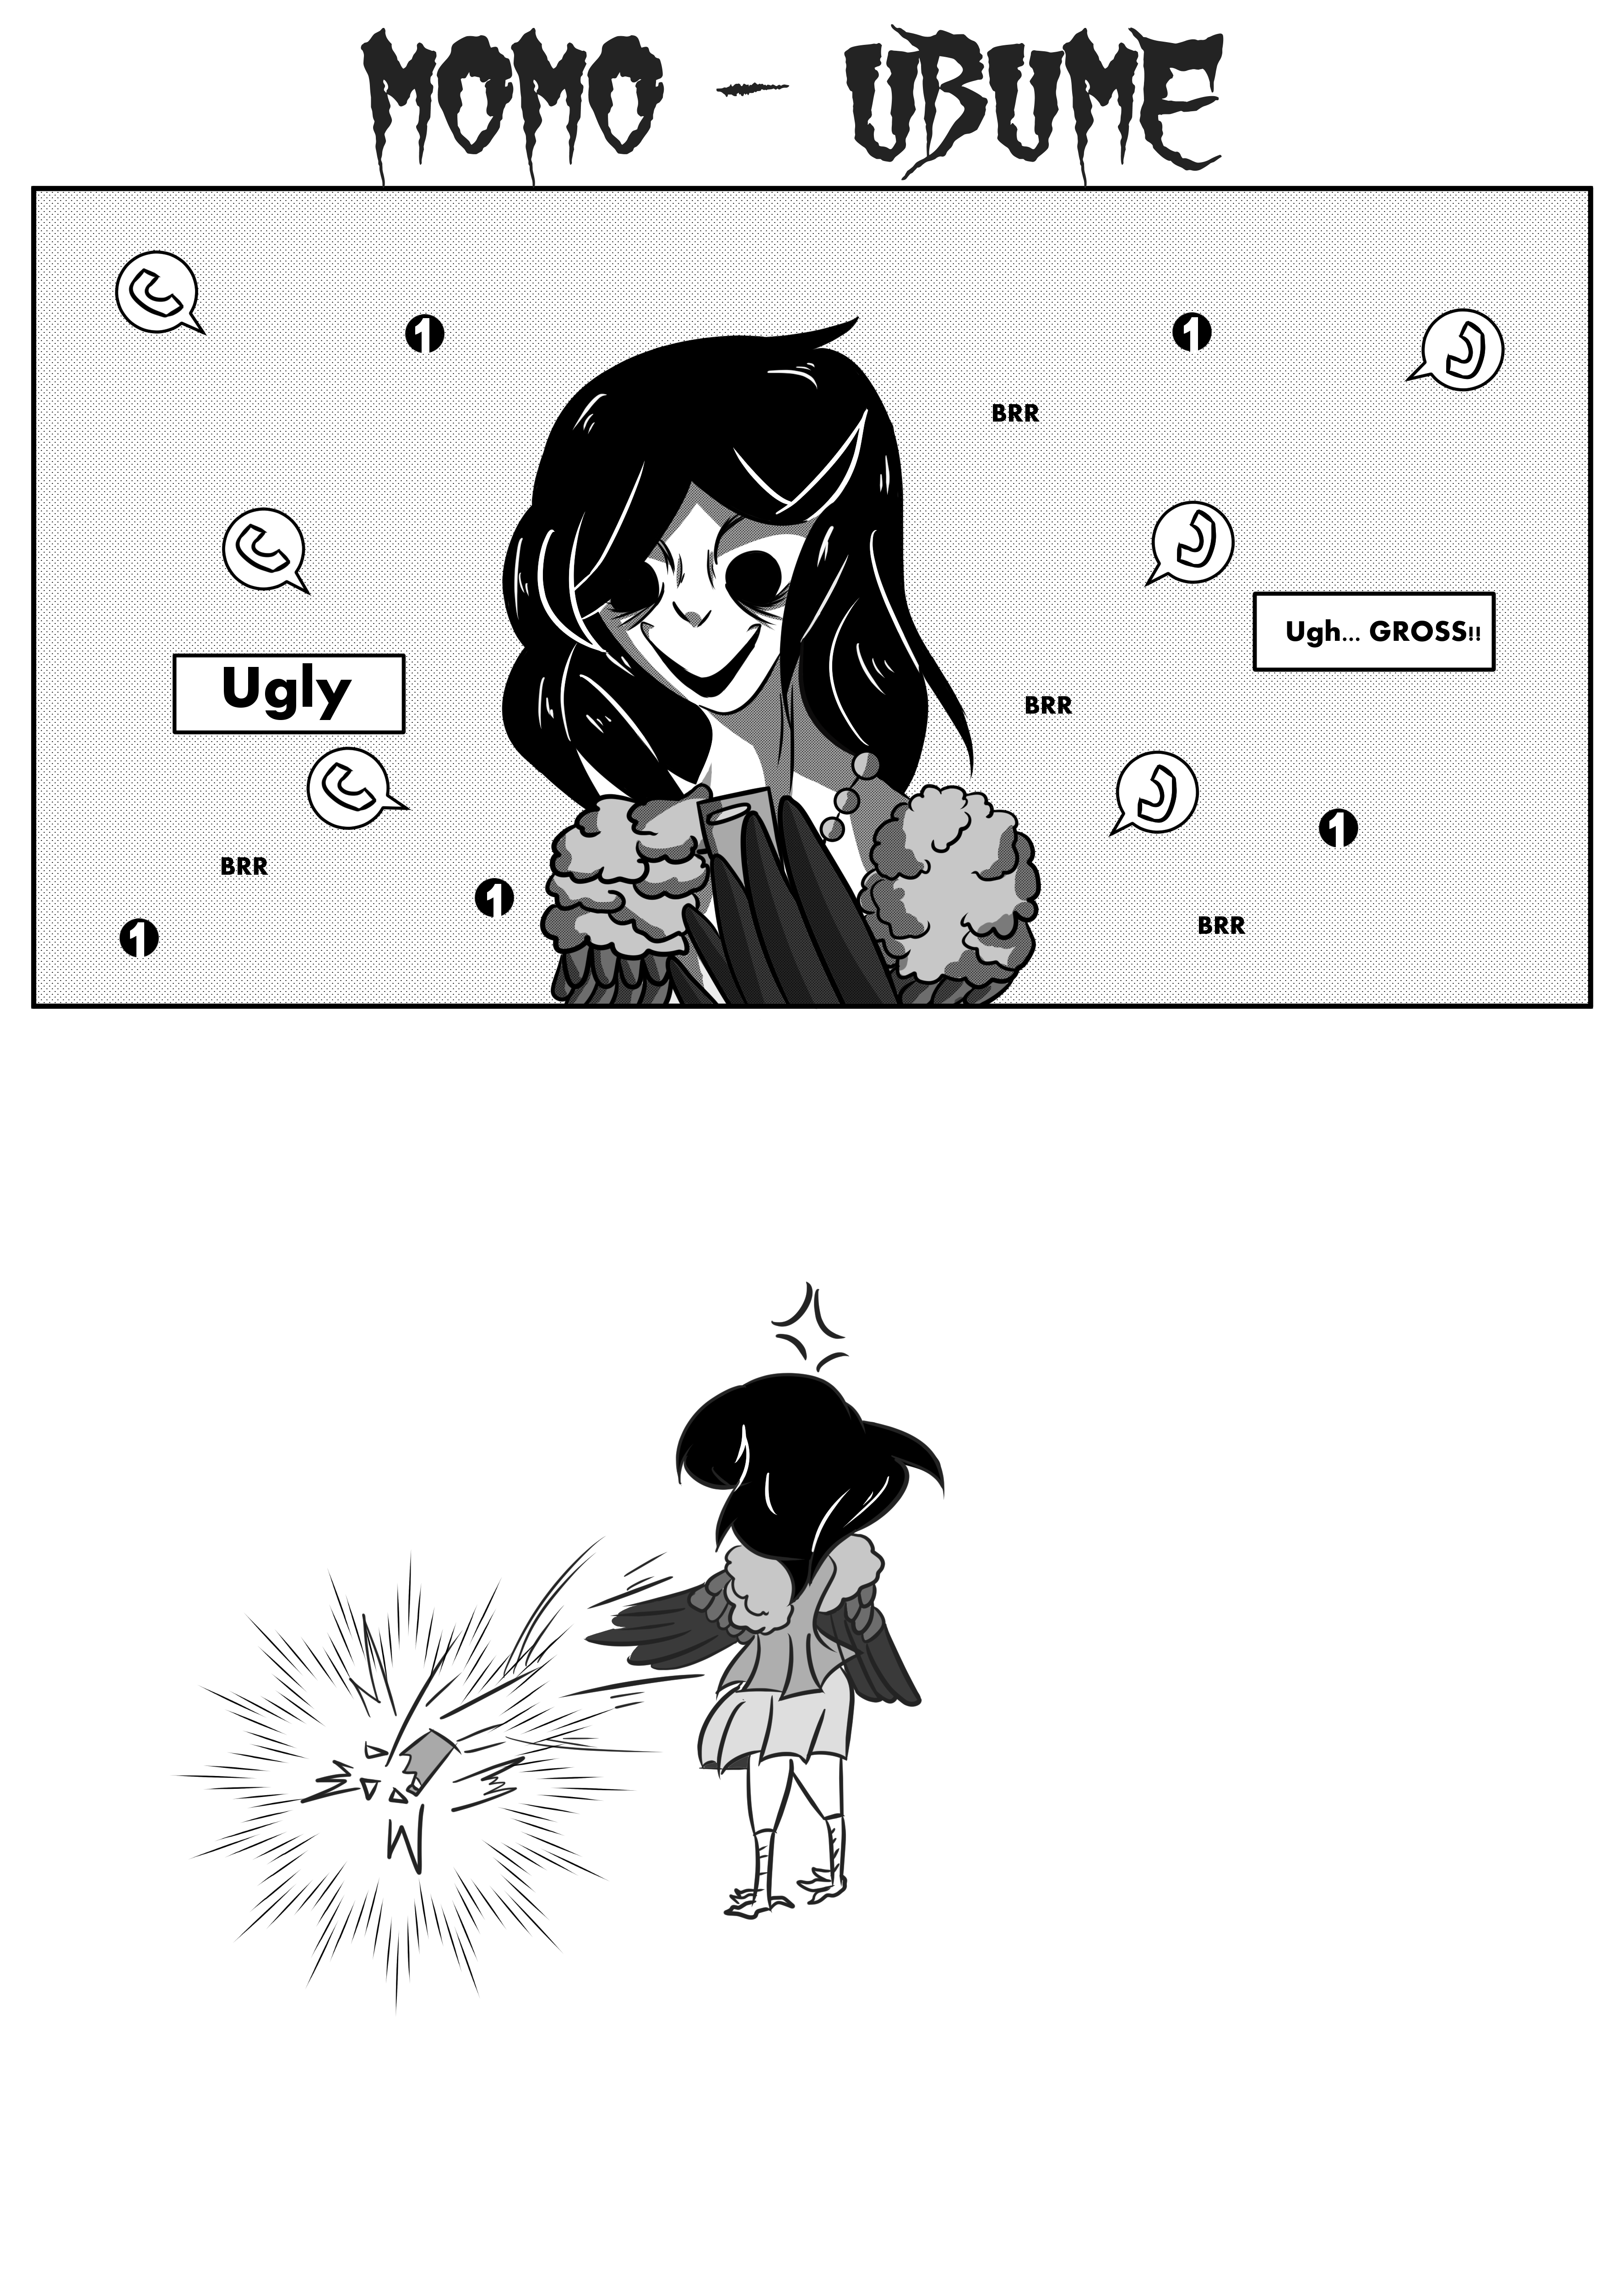 DONT BE RUDE WITH HER!! Ubume - Momo